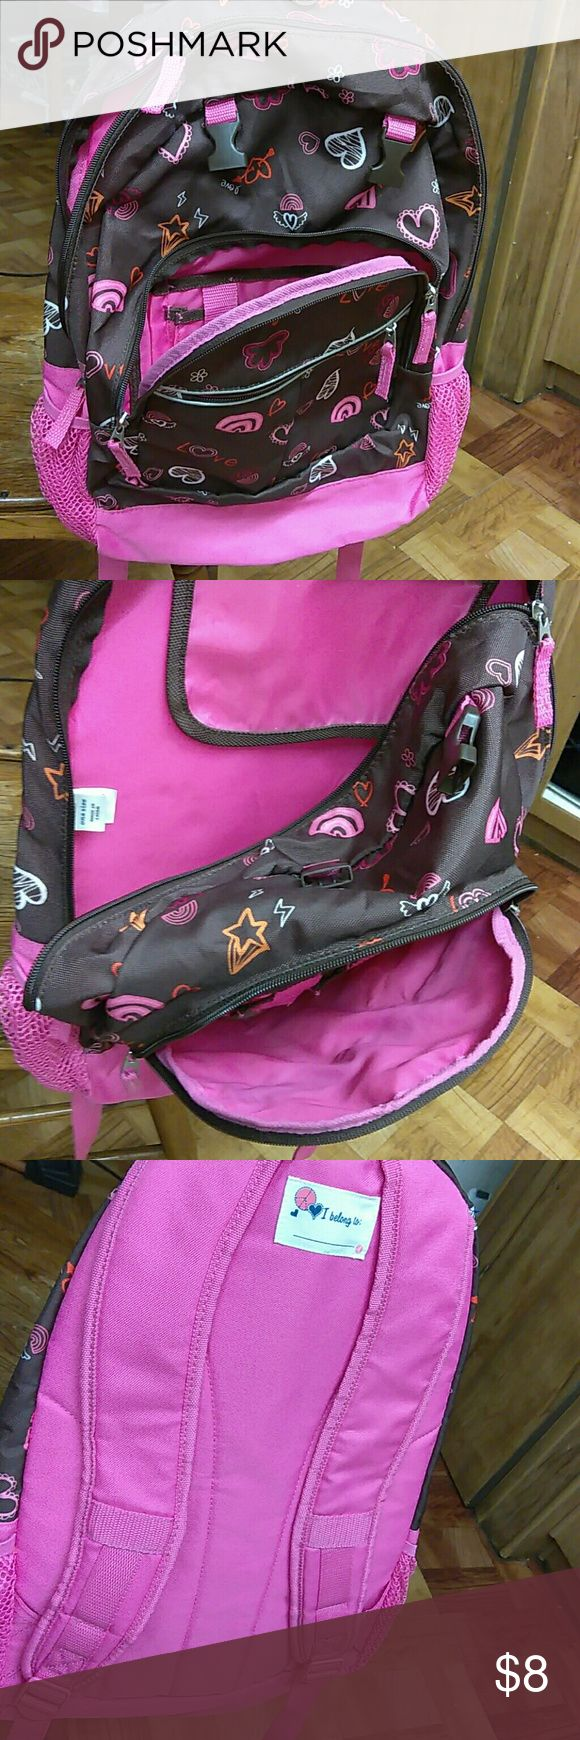 Old Navy.  Backpack Pink and brown w / hearts Old Navy Bags Backpacks